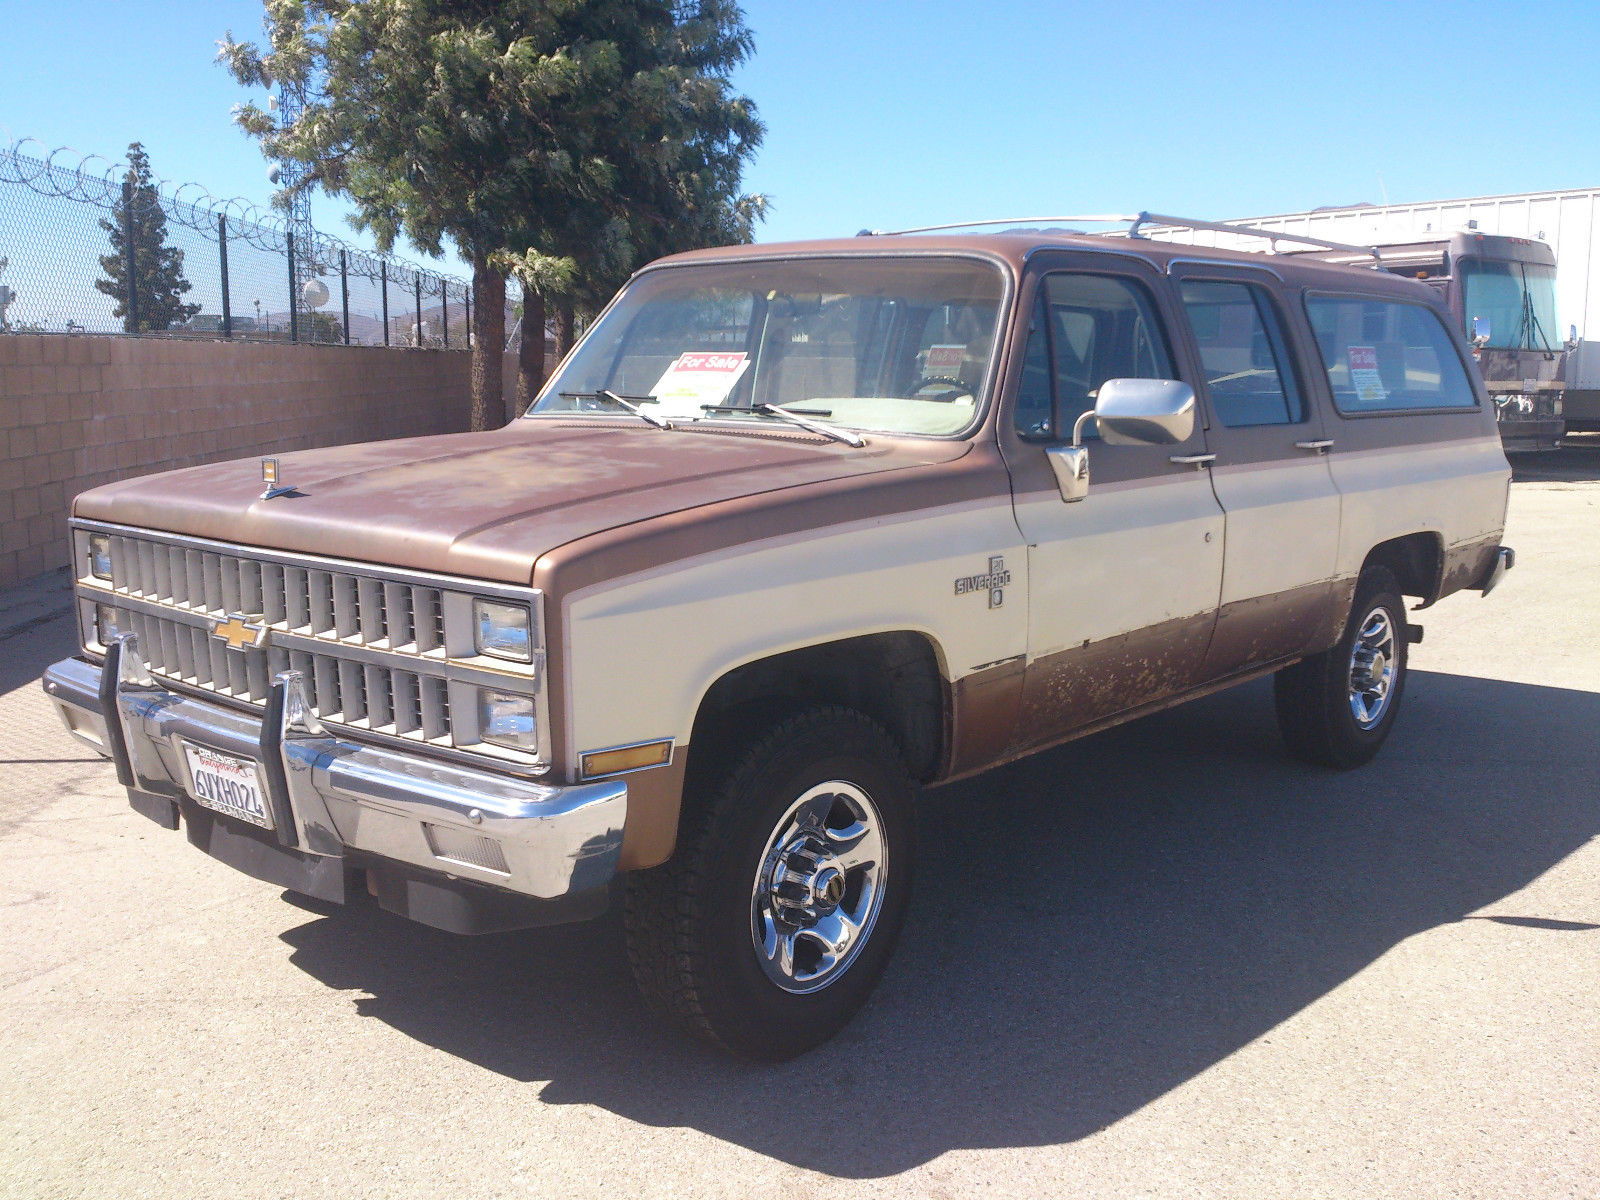 1981 Chevrolet Suburban Photos 1976 Chevy 4x4 3 4 Ton This